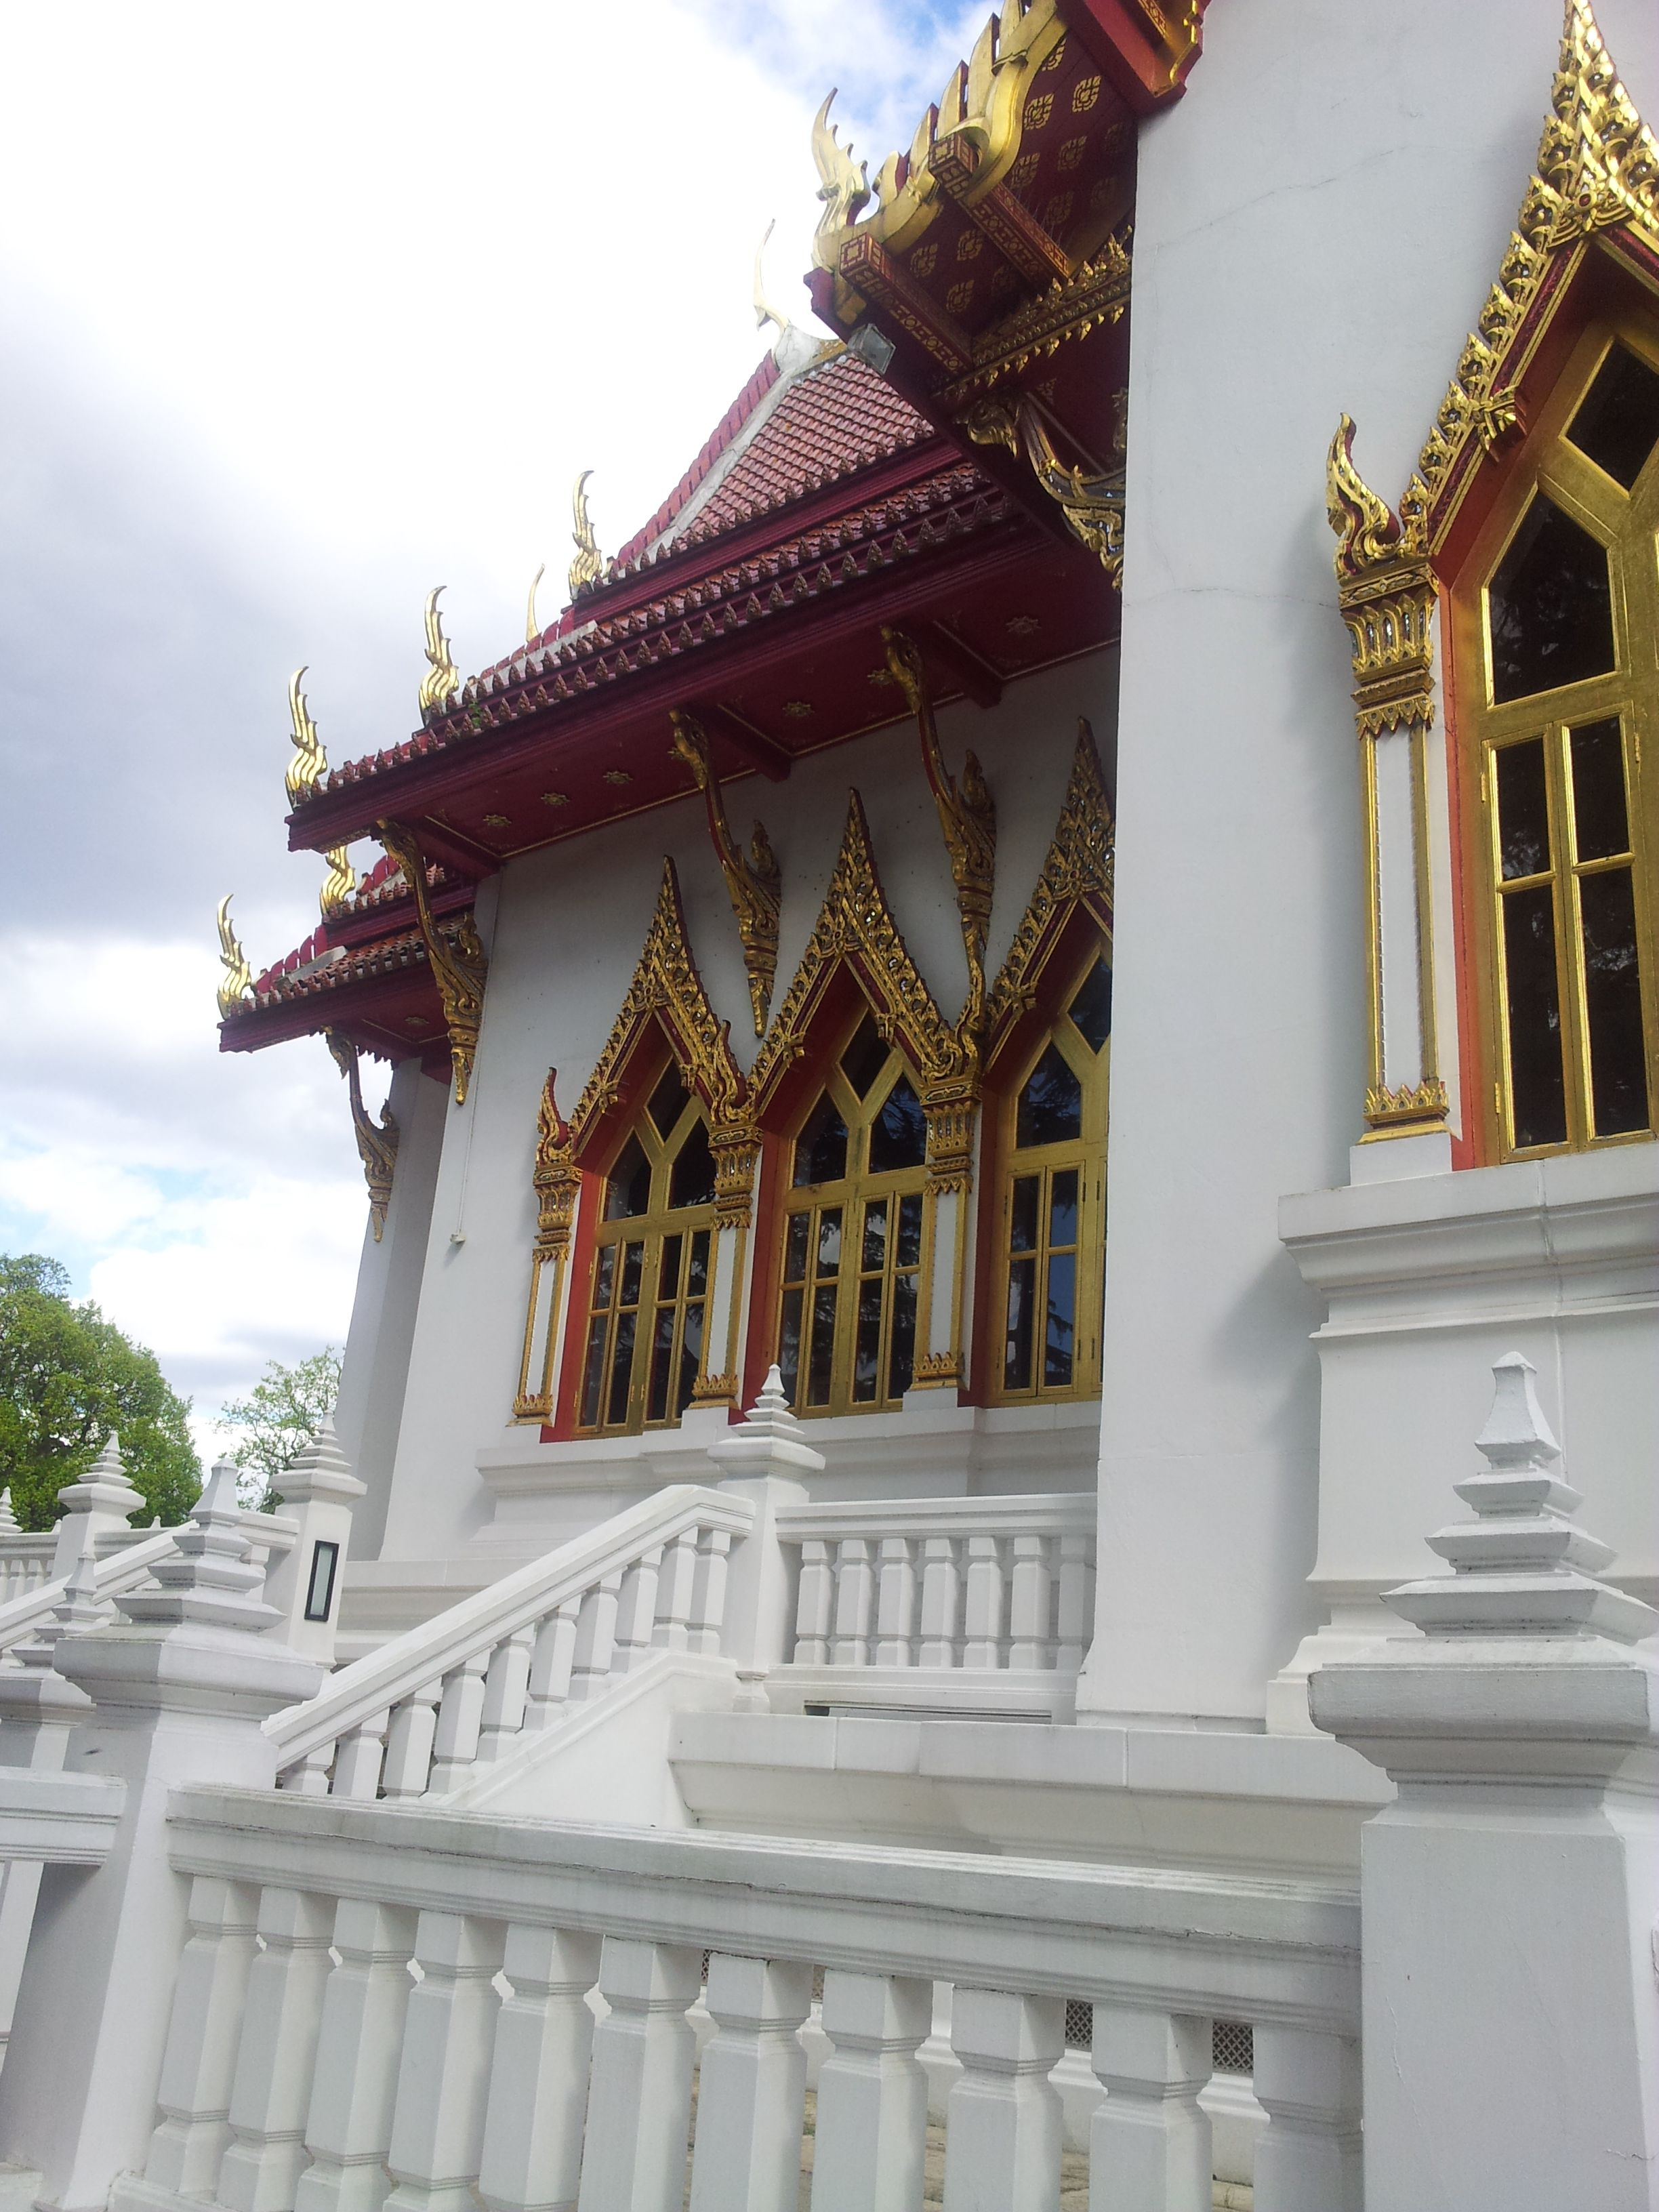 Thai Buddhist Temple in Wimbledon (South West London).